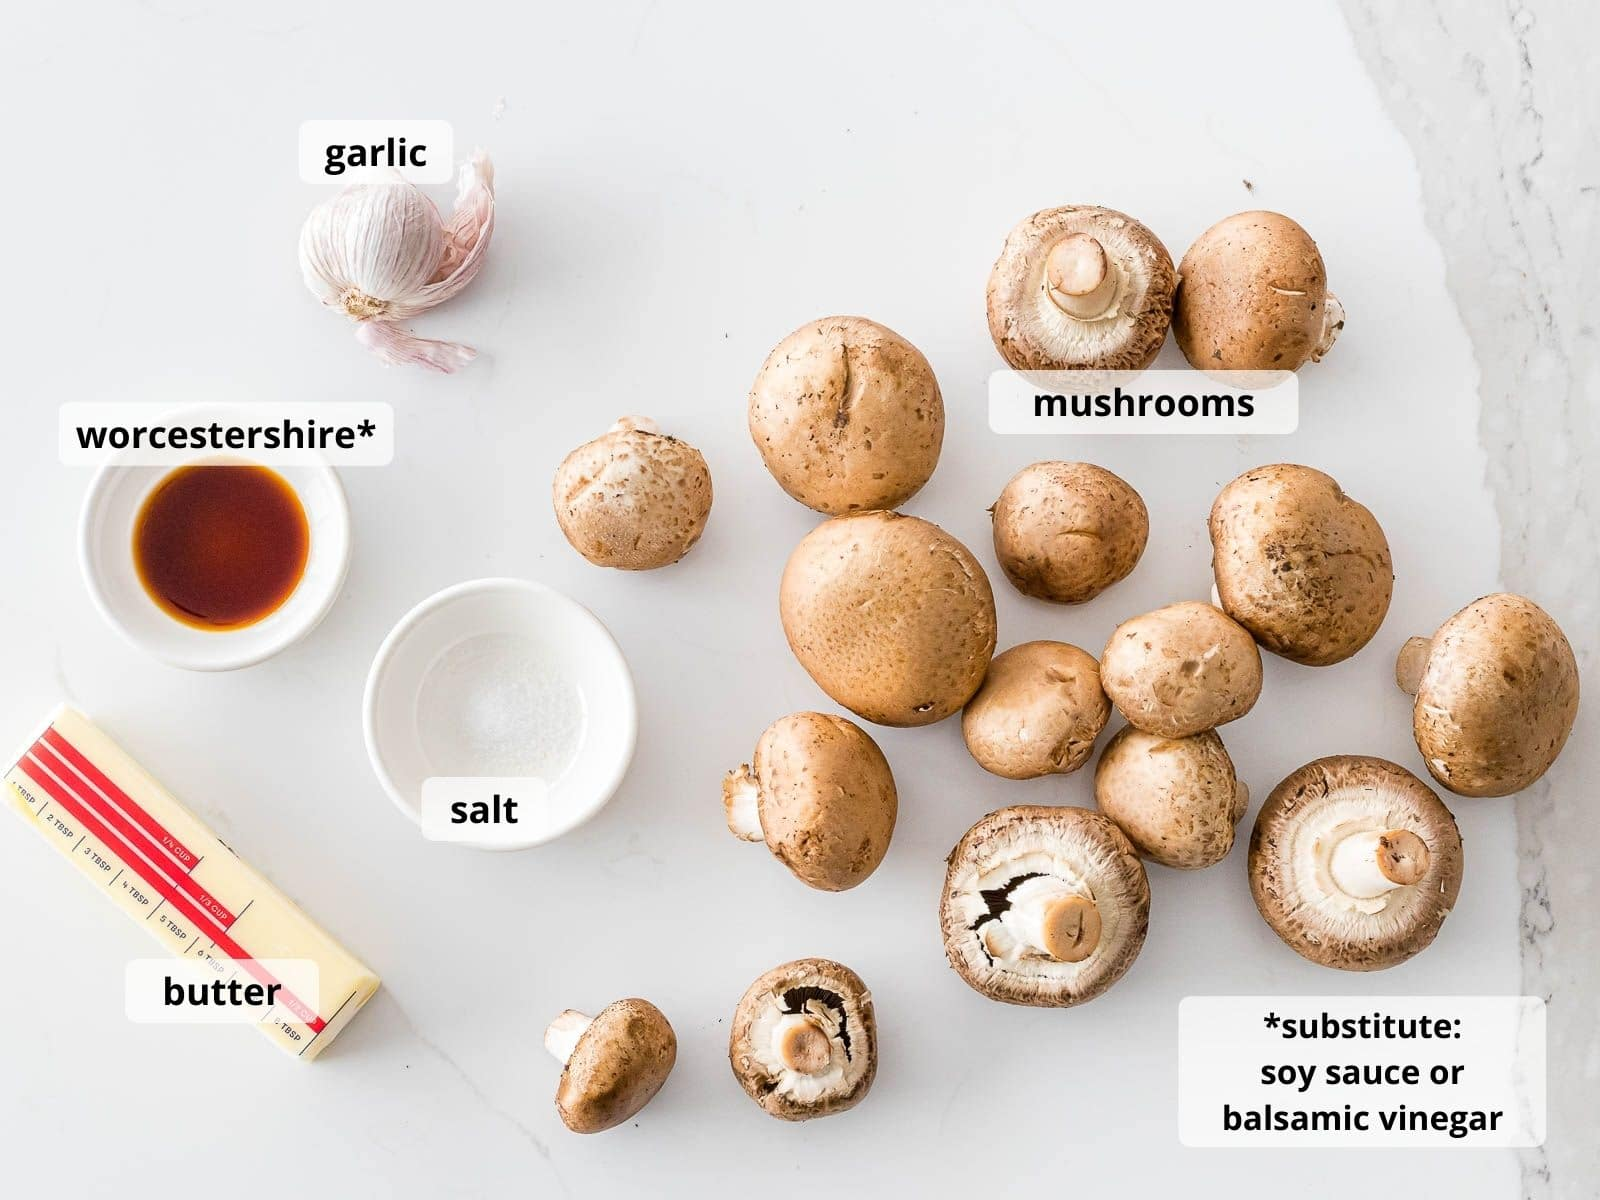 ingredients for garlic butter mushrooms with text labeling each ingredient